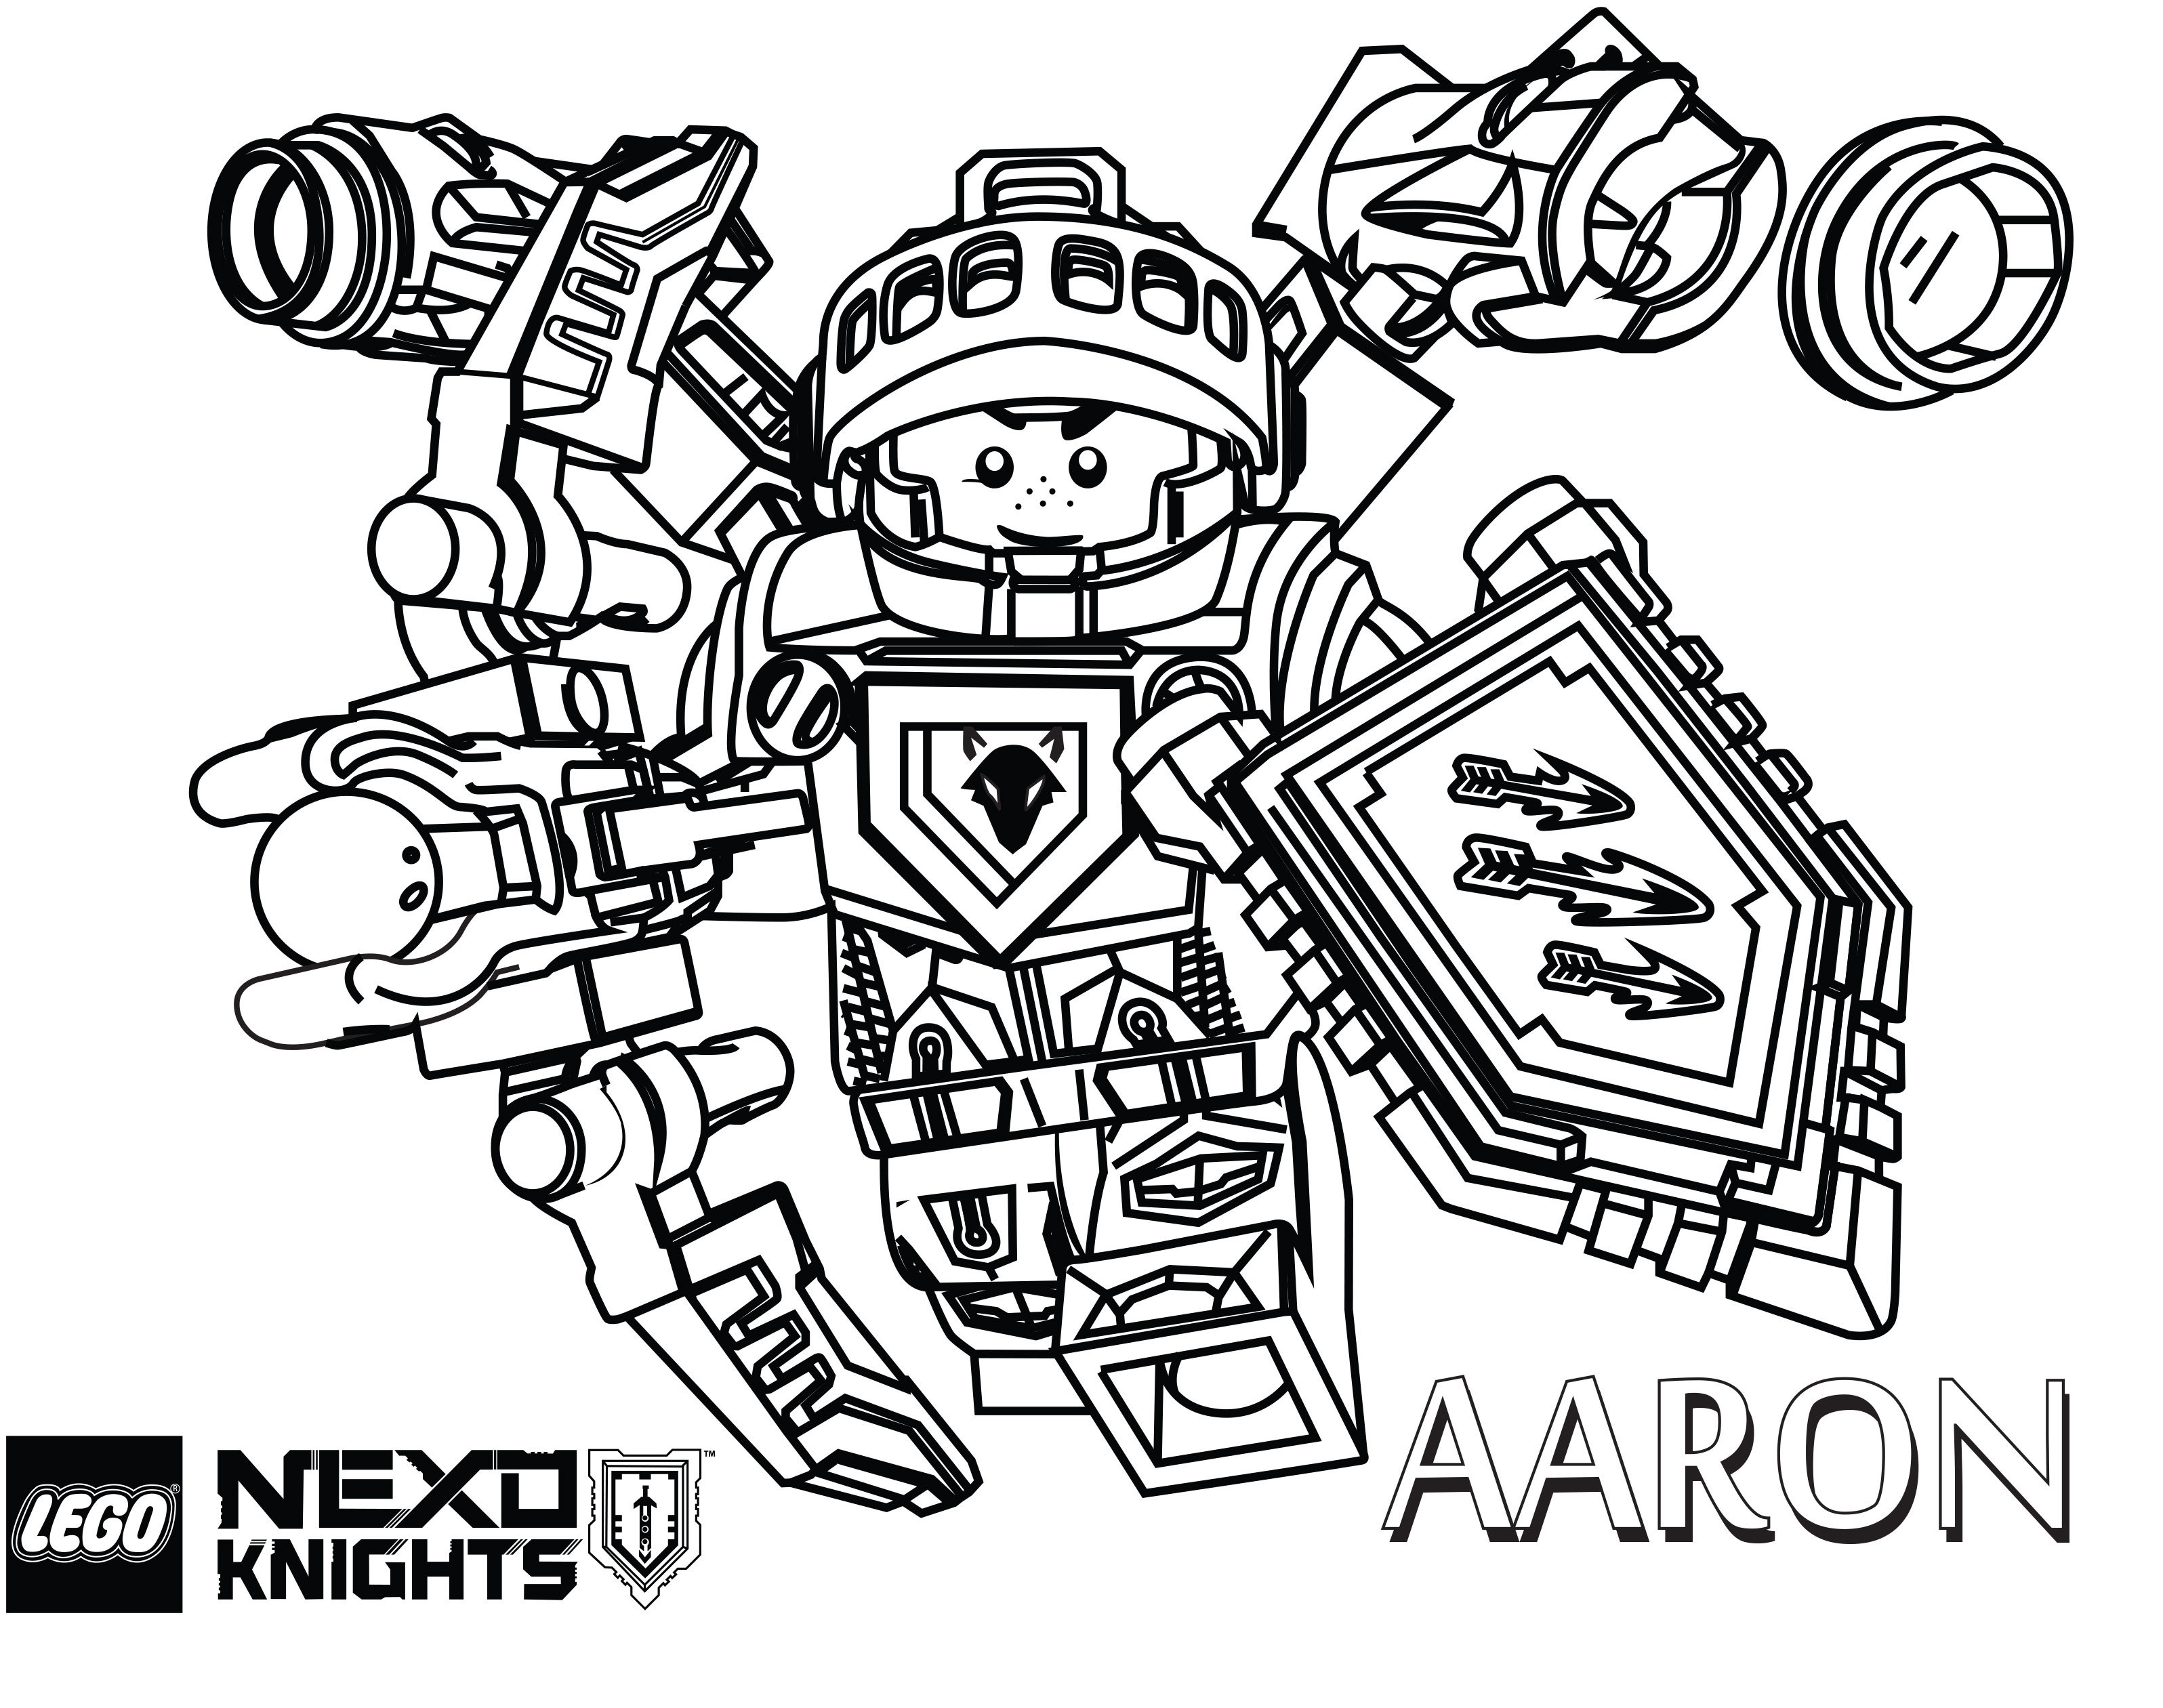 lego nexo knights coloring pages - lego nexo knights clay coloring pages sketch templates